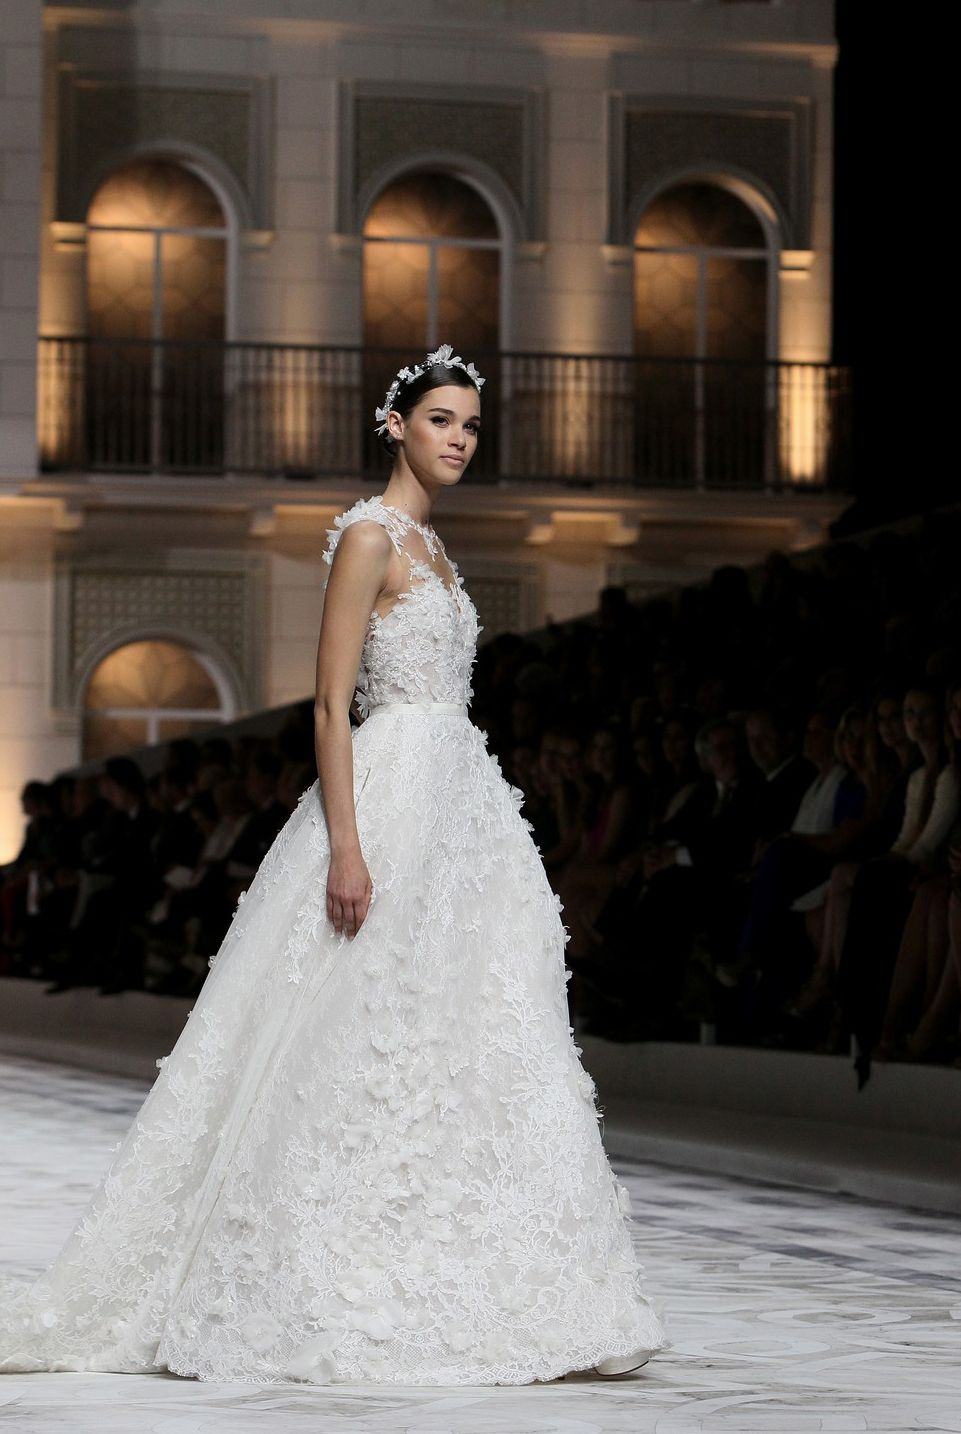 http://complicatedbut.tumblr.com/post/85361104209/runwayandbeauty-pauline-hoarau-pronovias